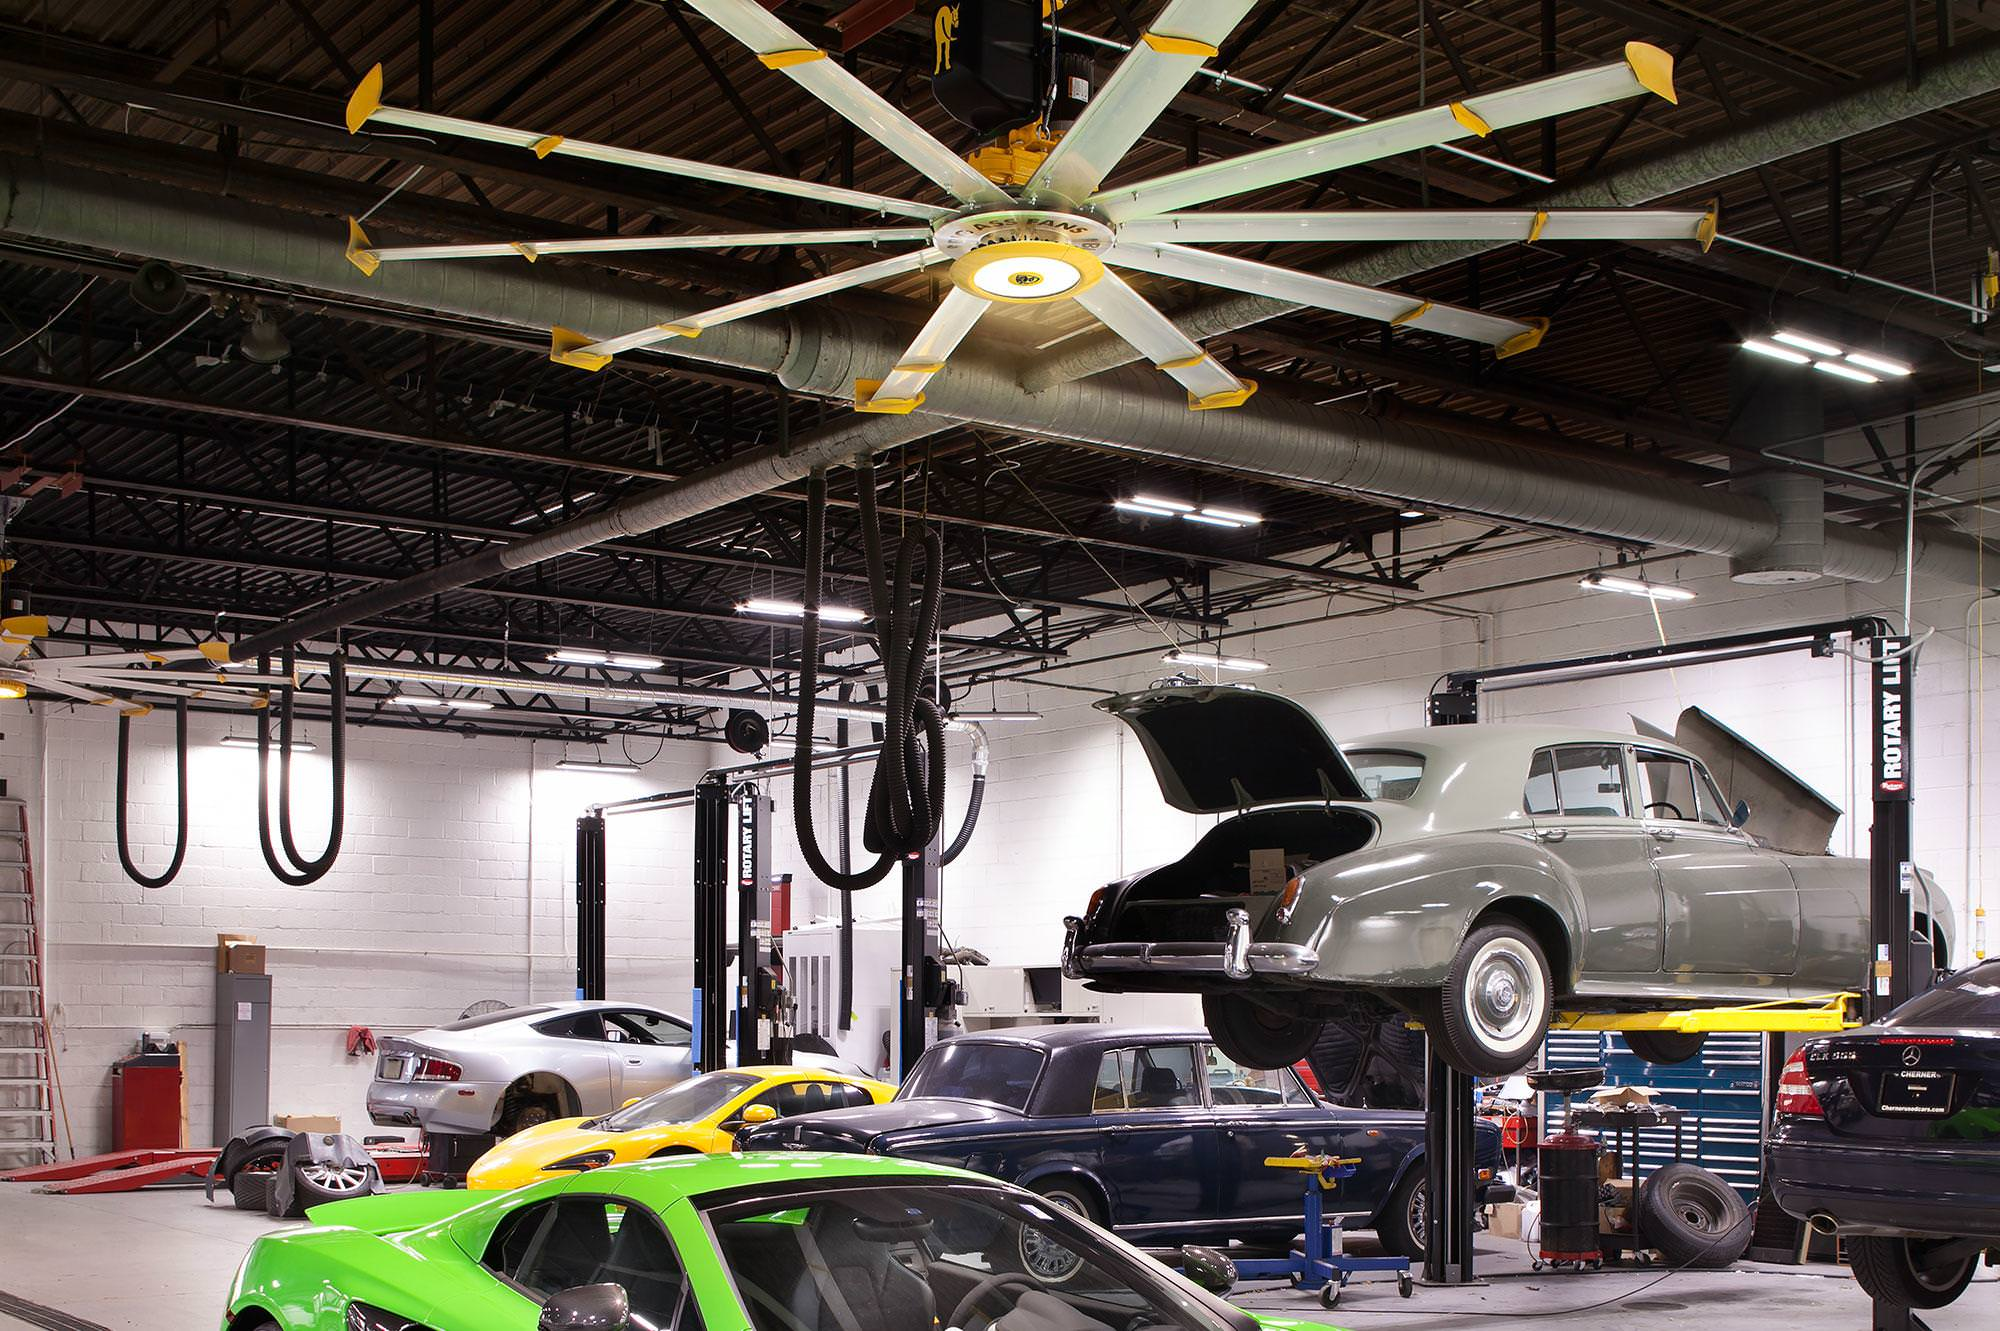 Garage Experts South Carolina Garage Cooling Fans From Big Ass Fans Keep You Cool And Your